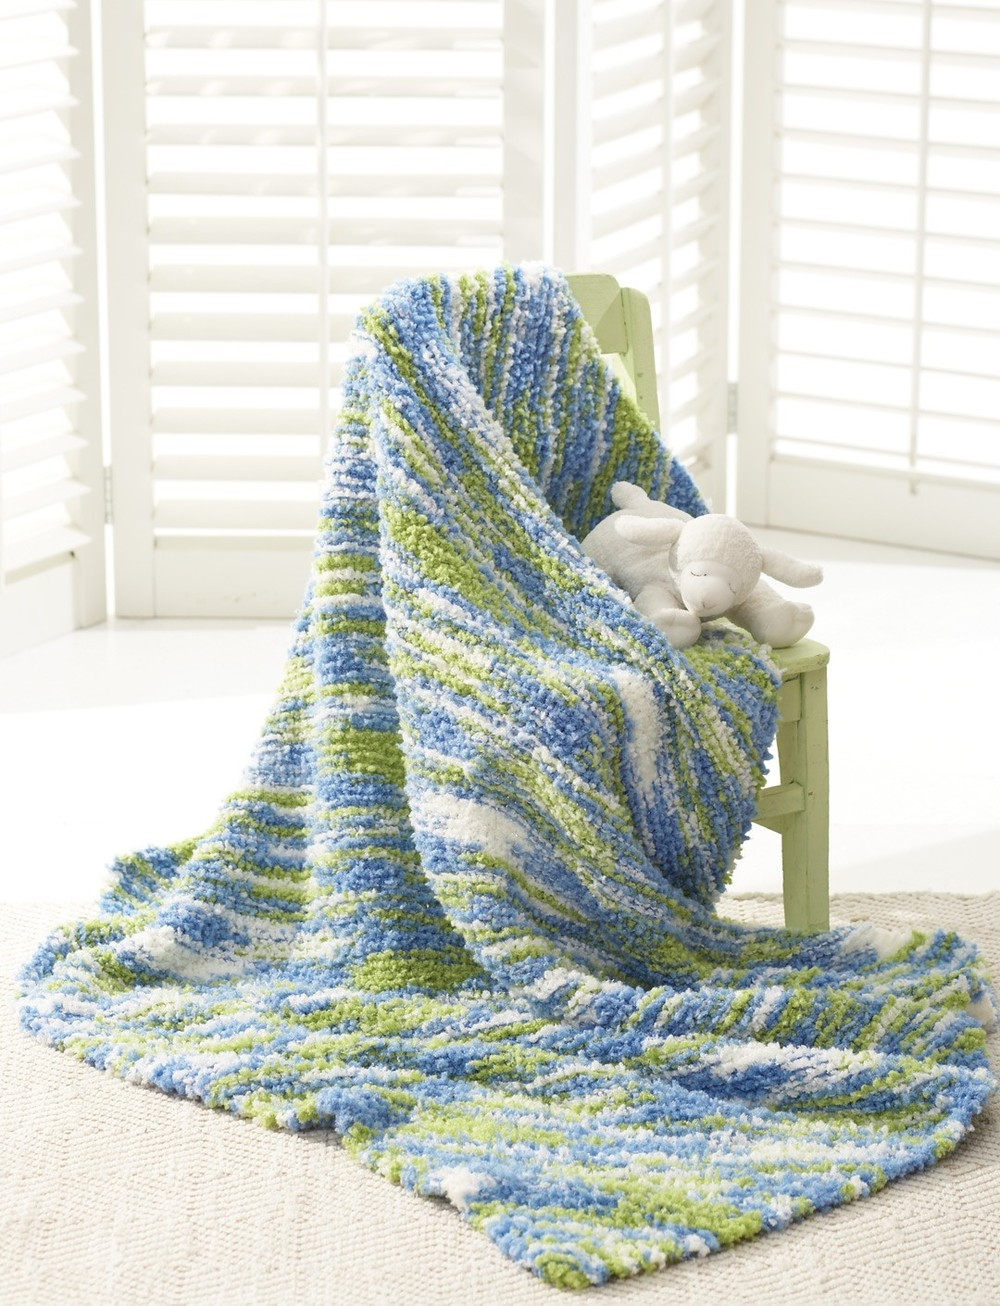 Knitting Patterns Using Baby Yarn : The Land and the Sea Baby Blanket AllFreeKnitting.com